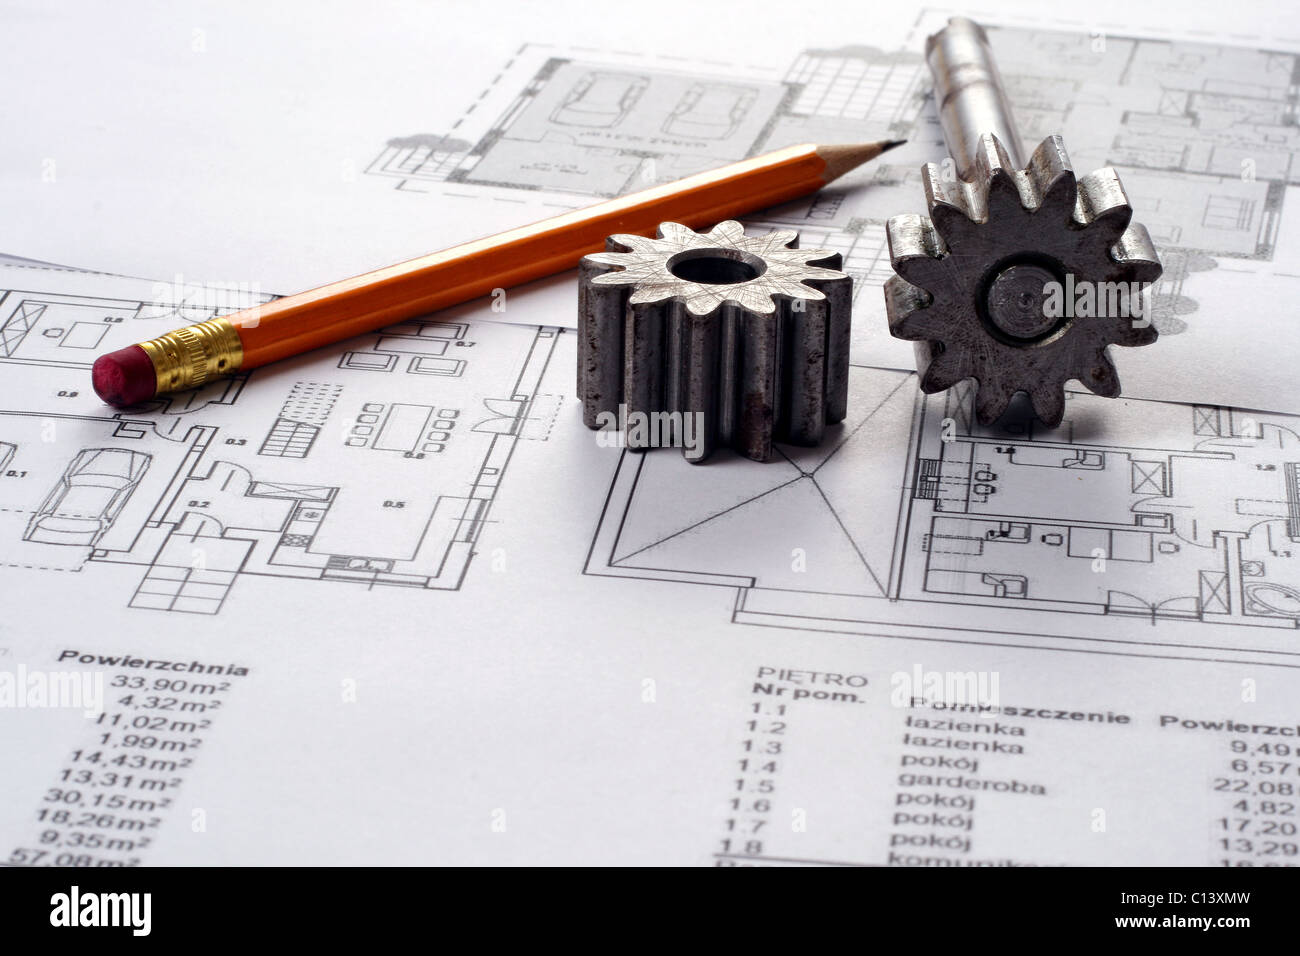 Construction Plan Blueprints Drafting Tools Stockfotos ...